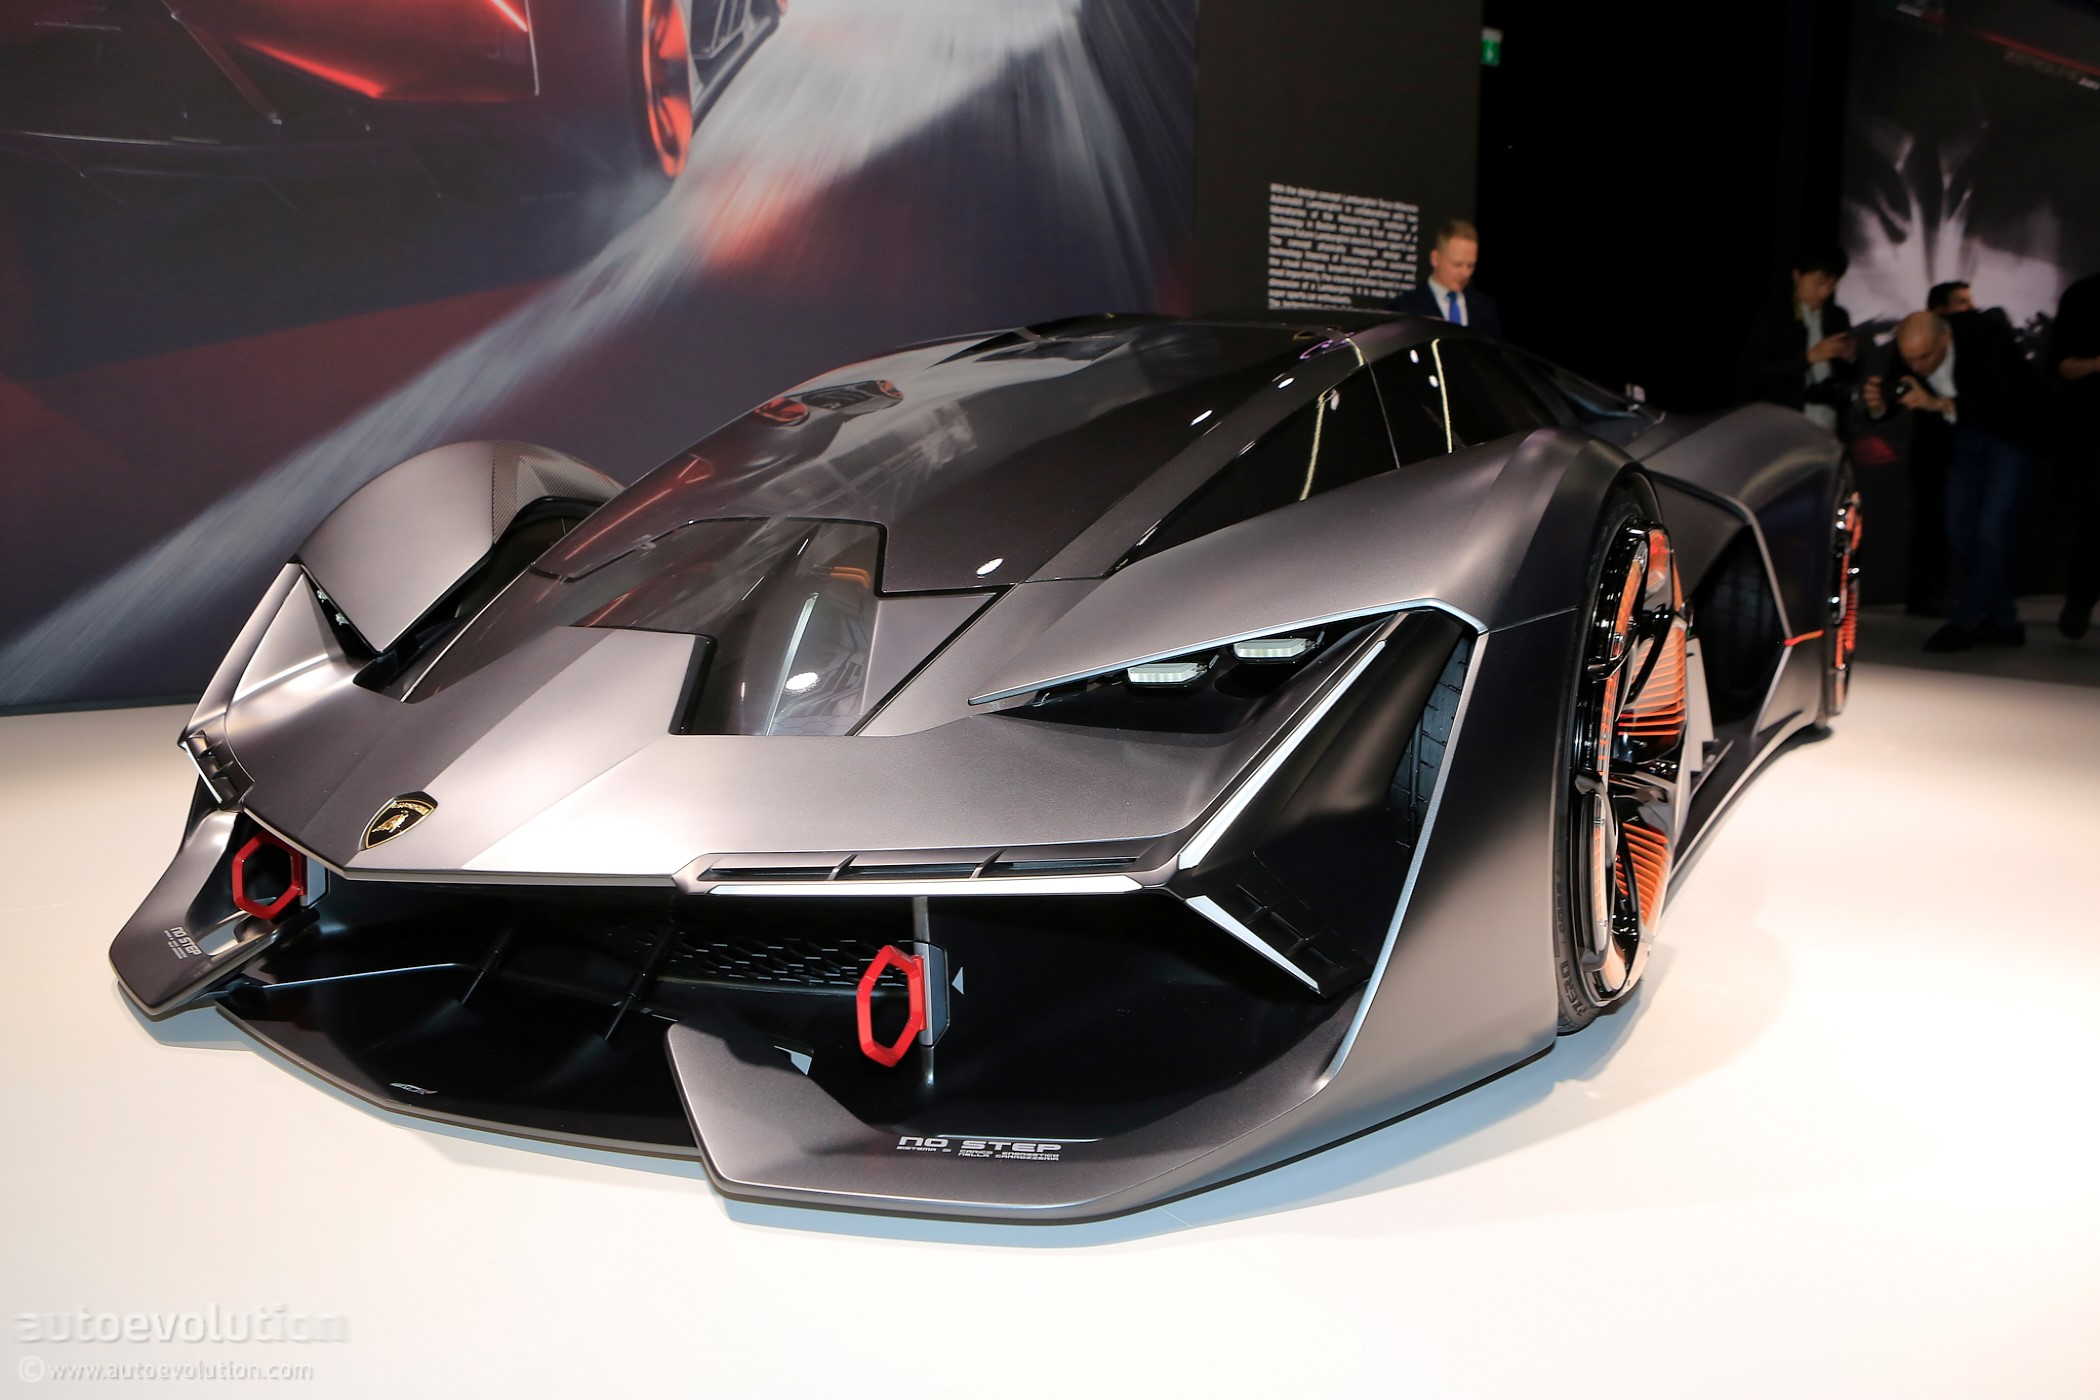 Lamborghini Lb48h Hybrid Supercar Showcased At A Private Event